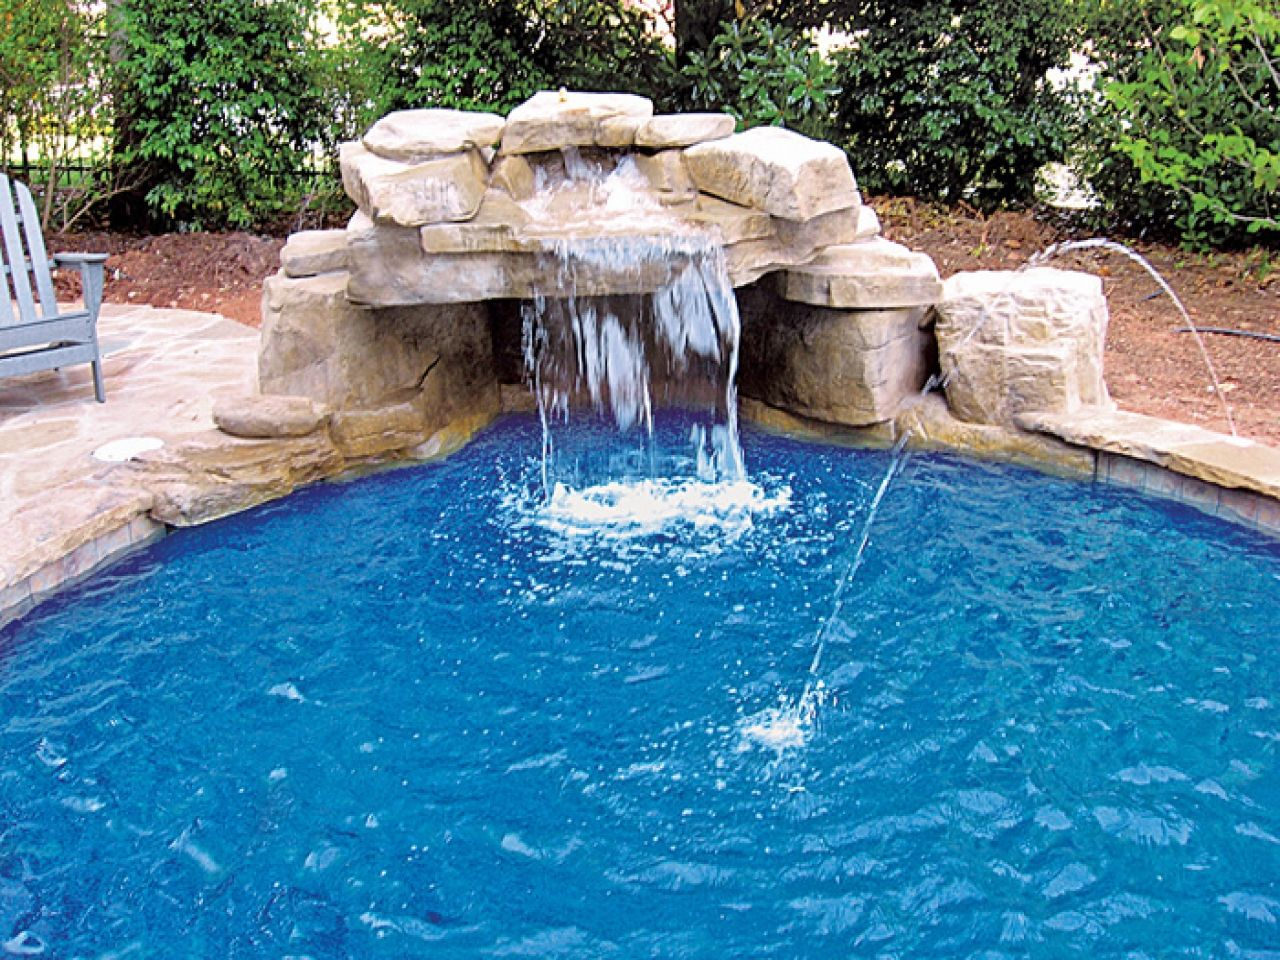 Pools Swimming Pool Clipart With Swimming Pool Design And Waterfall Pool  Rock Waterfall Designs Outdoors And